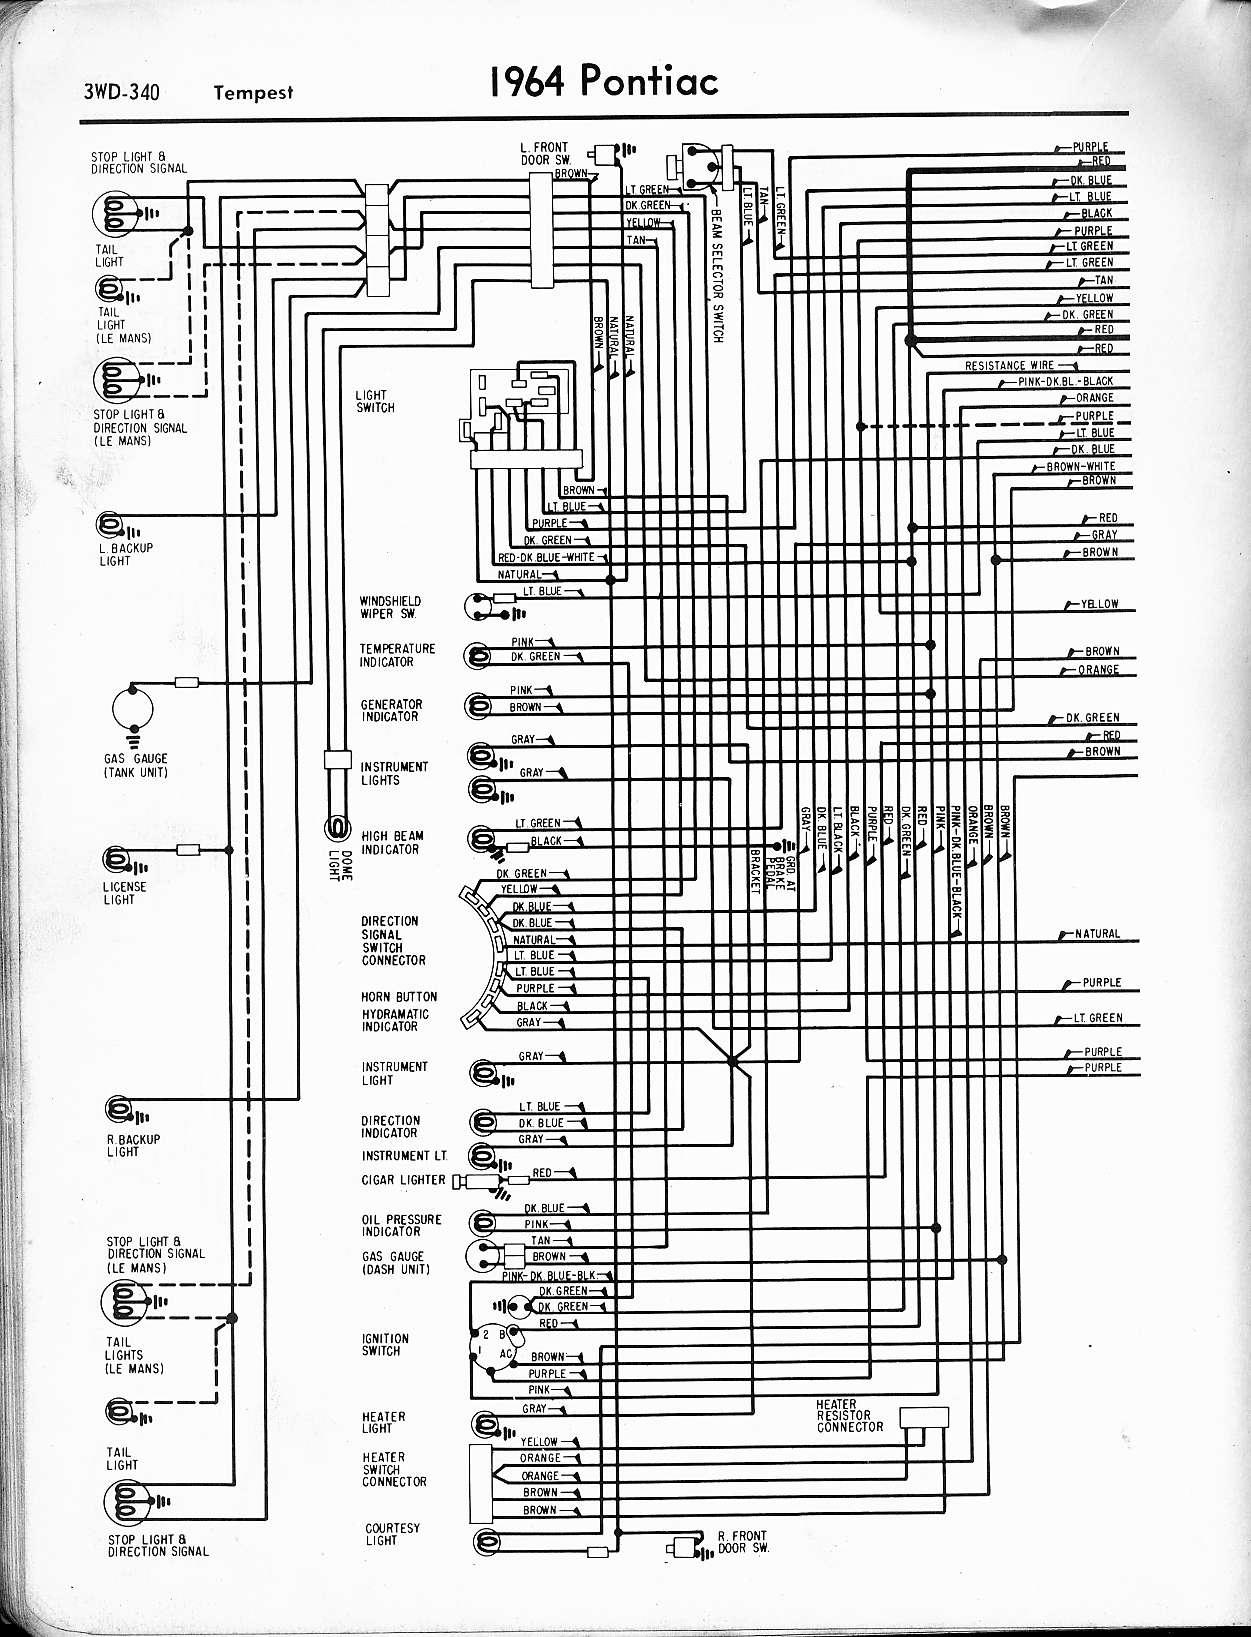 [WRG-8538] 1967 Pontiac Fuse Box Diagram Wiring Schematic